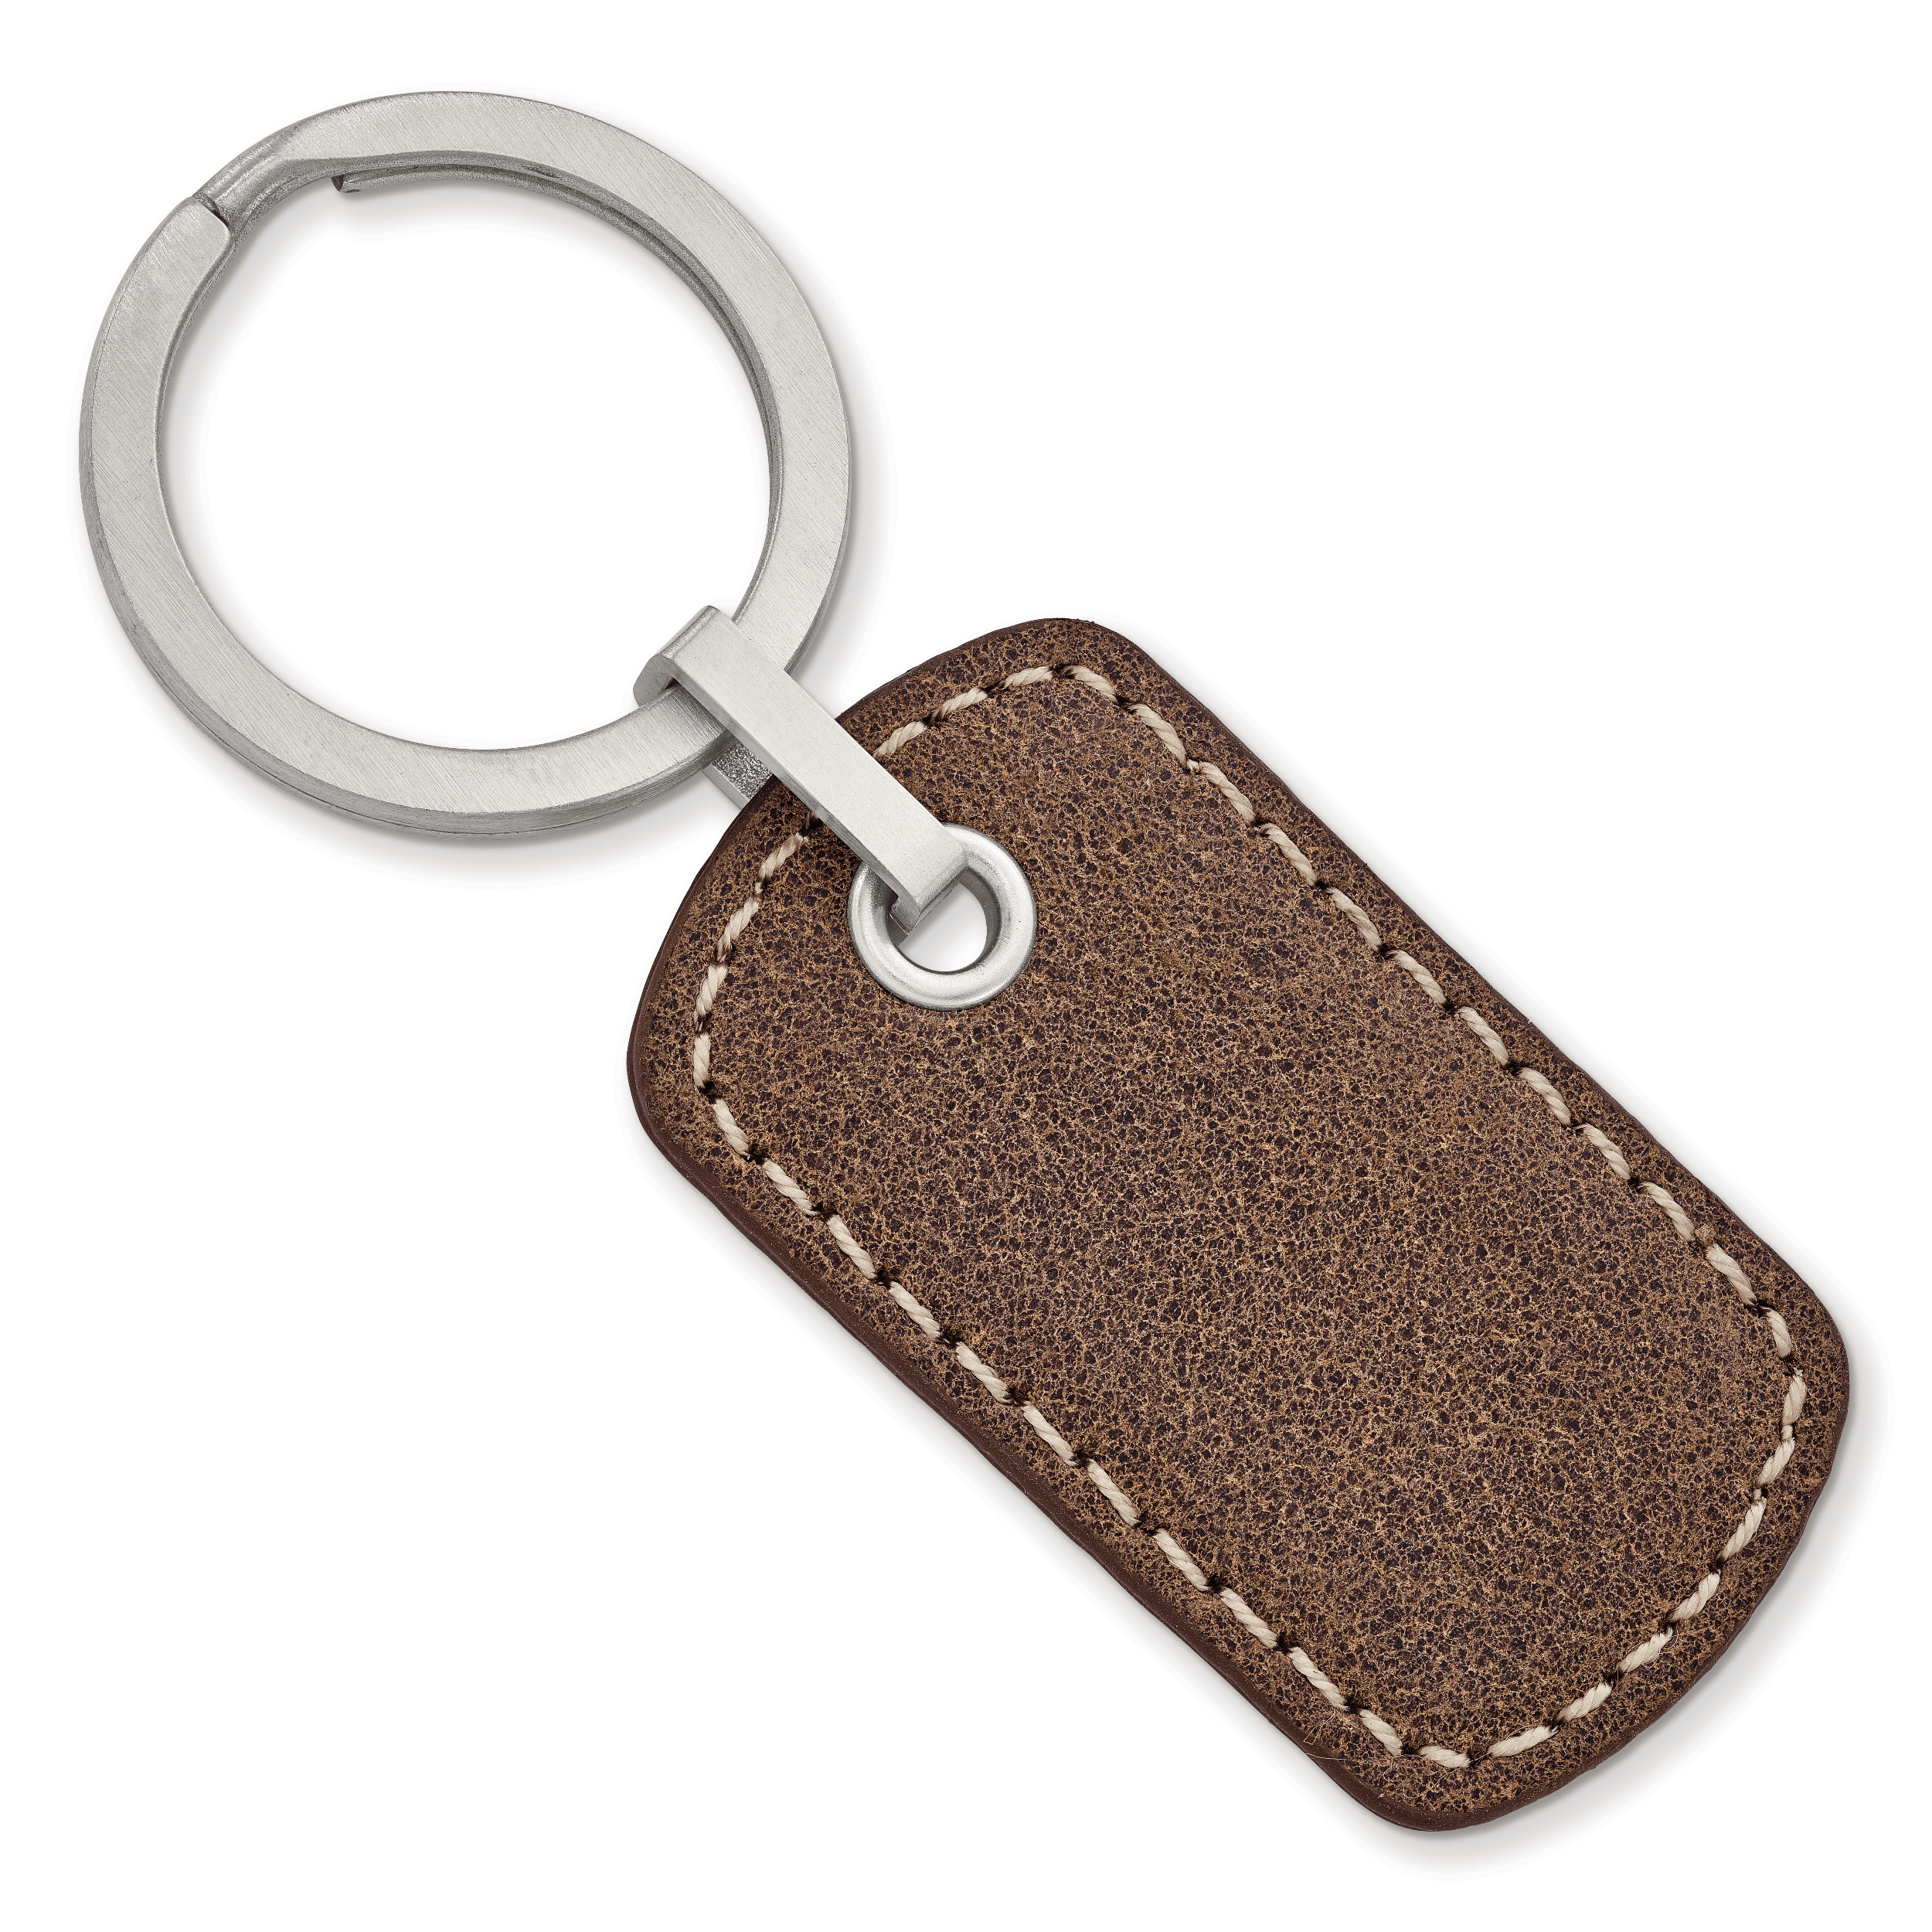 Stainless Steel Brushed Tan Stitched Leather Key Ring by CoutureJewelers